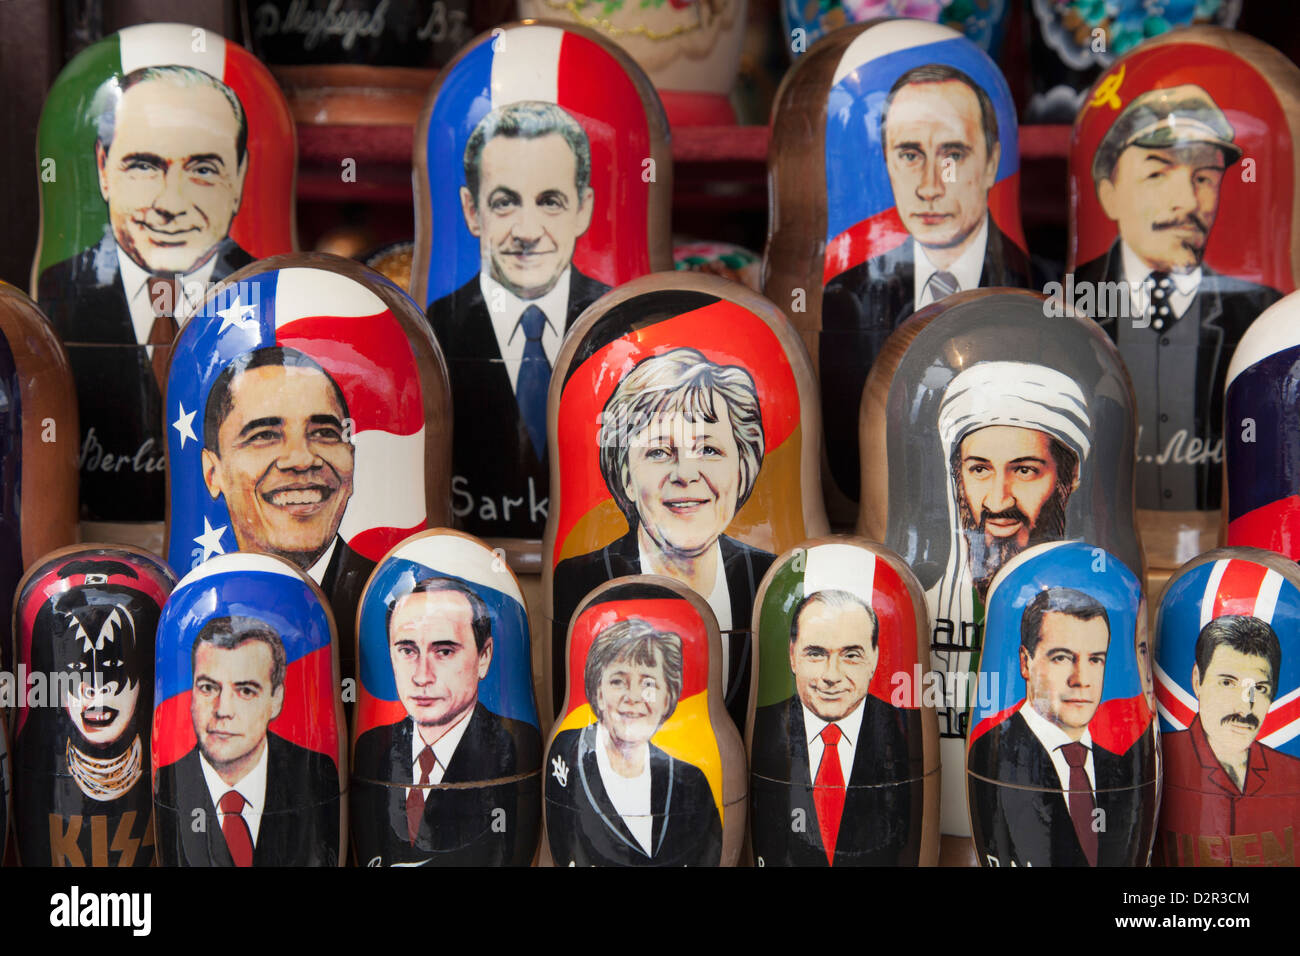 Modern Russian dolls for sale, Russia, Europe - Stock Image